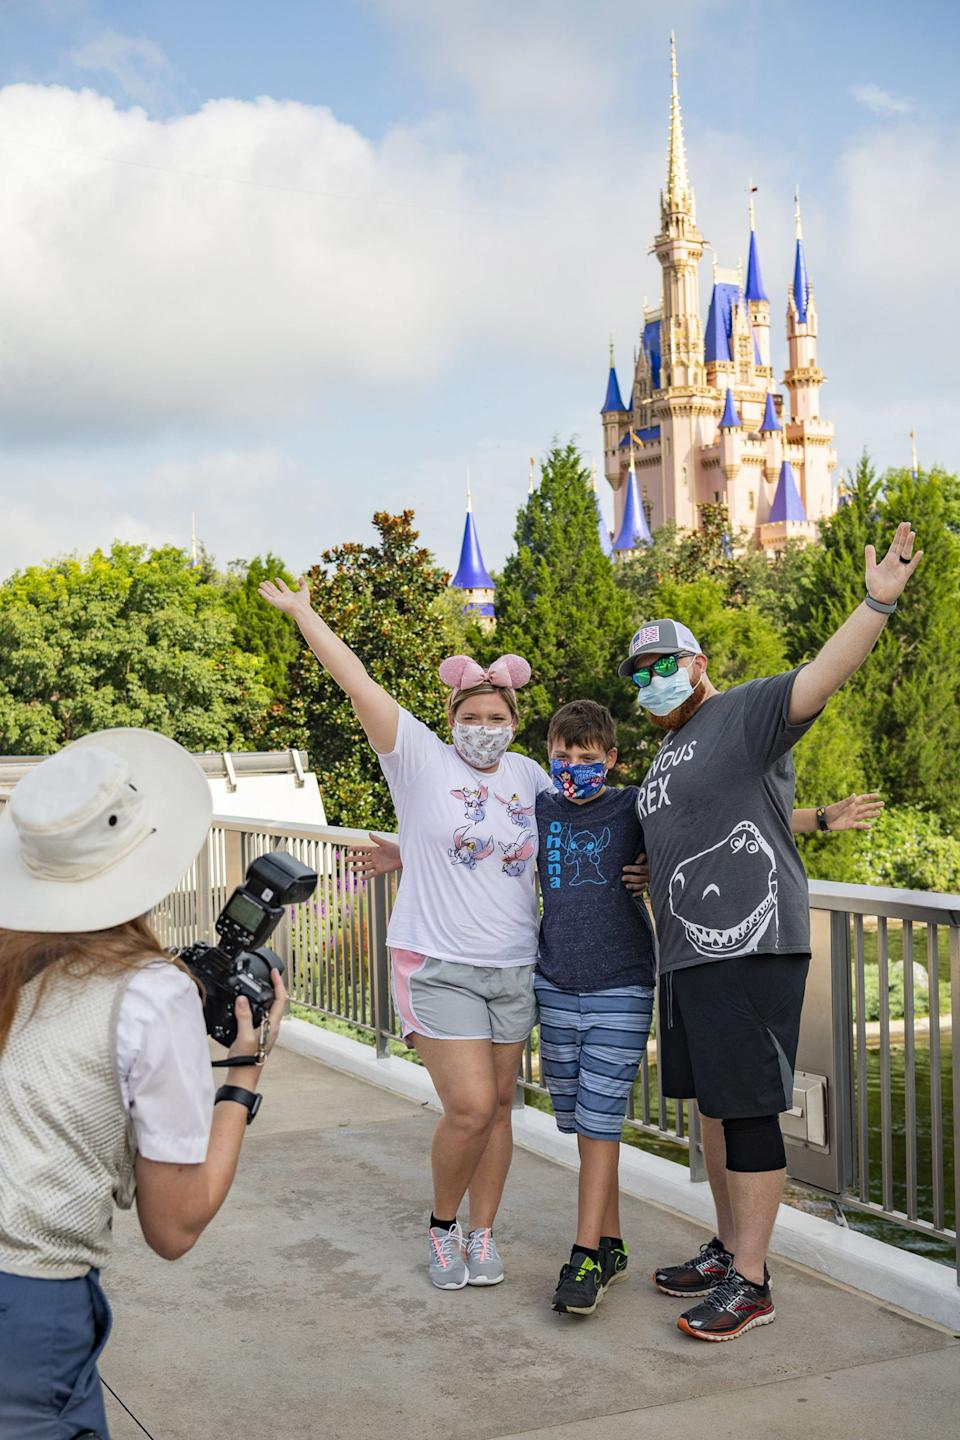 Guests stop to take a photo at Magic Kingdom Park at Walt Disney World Resort on July 11, 2020 in Lake Buena Vista, Florida. July 11, 2020 is the first day of the theme park's phased reopening.Photo by Matt Stroshane/Walt Disney World Resort via Getty Images